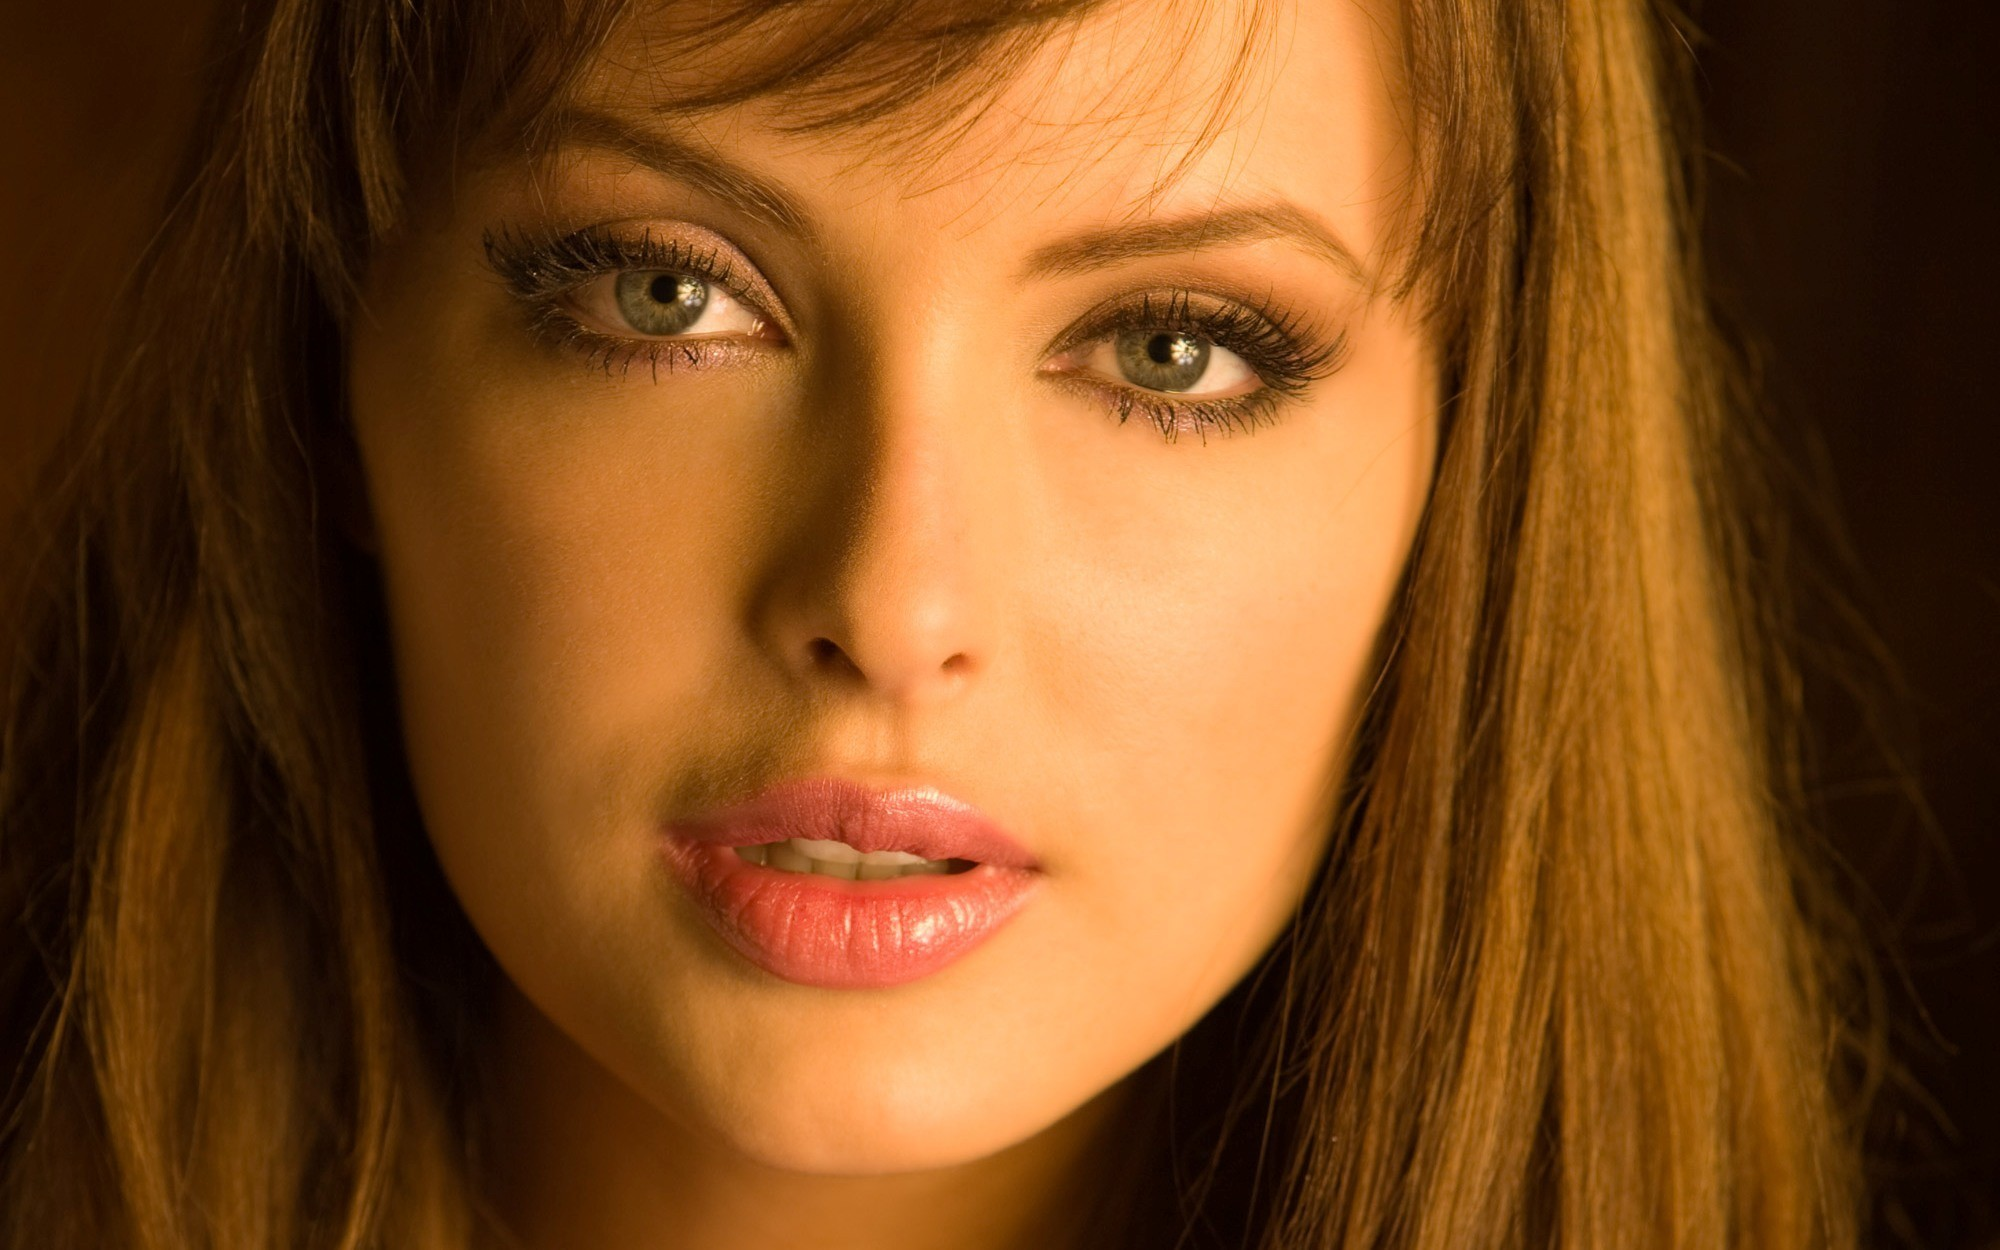 woman Shera Bechard faces HD Wallpaper